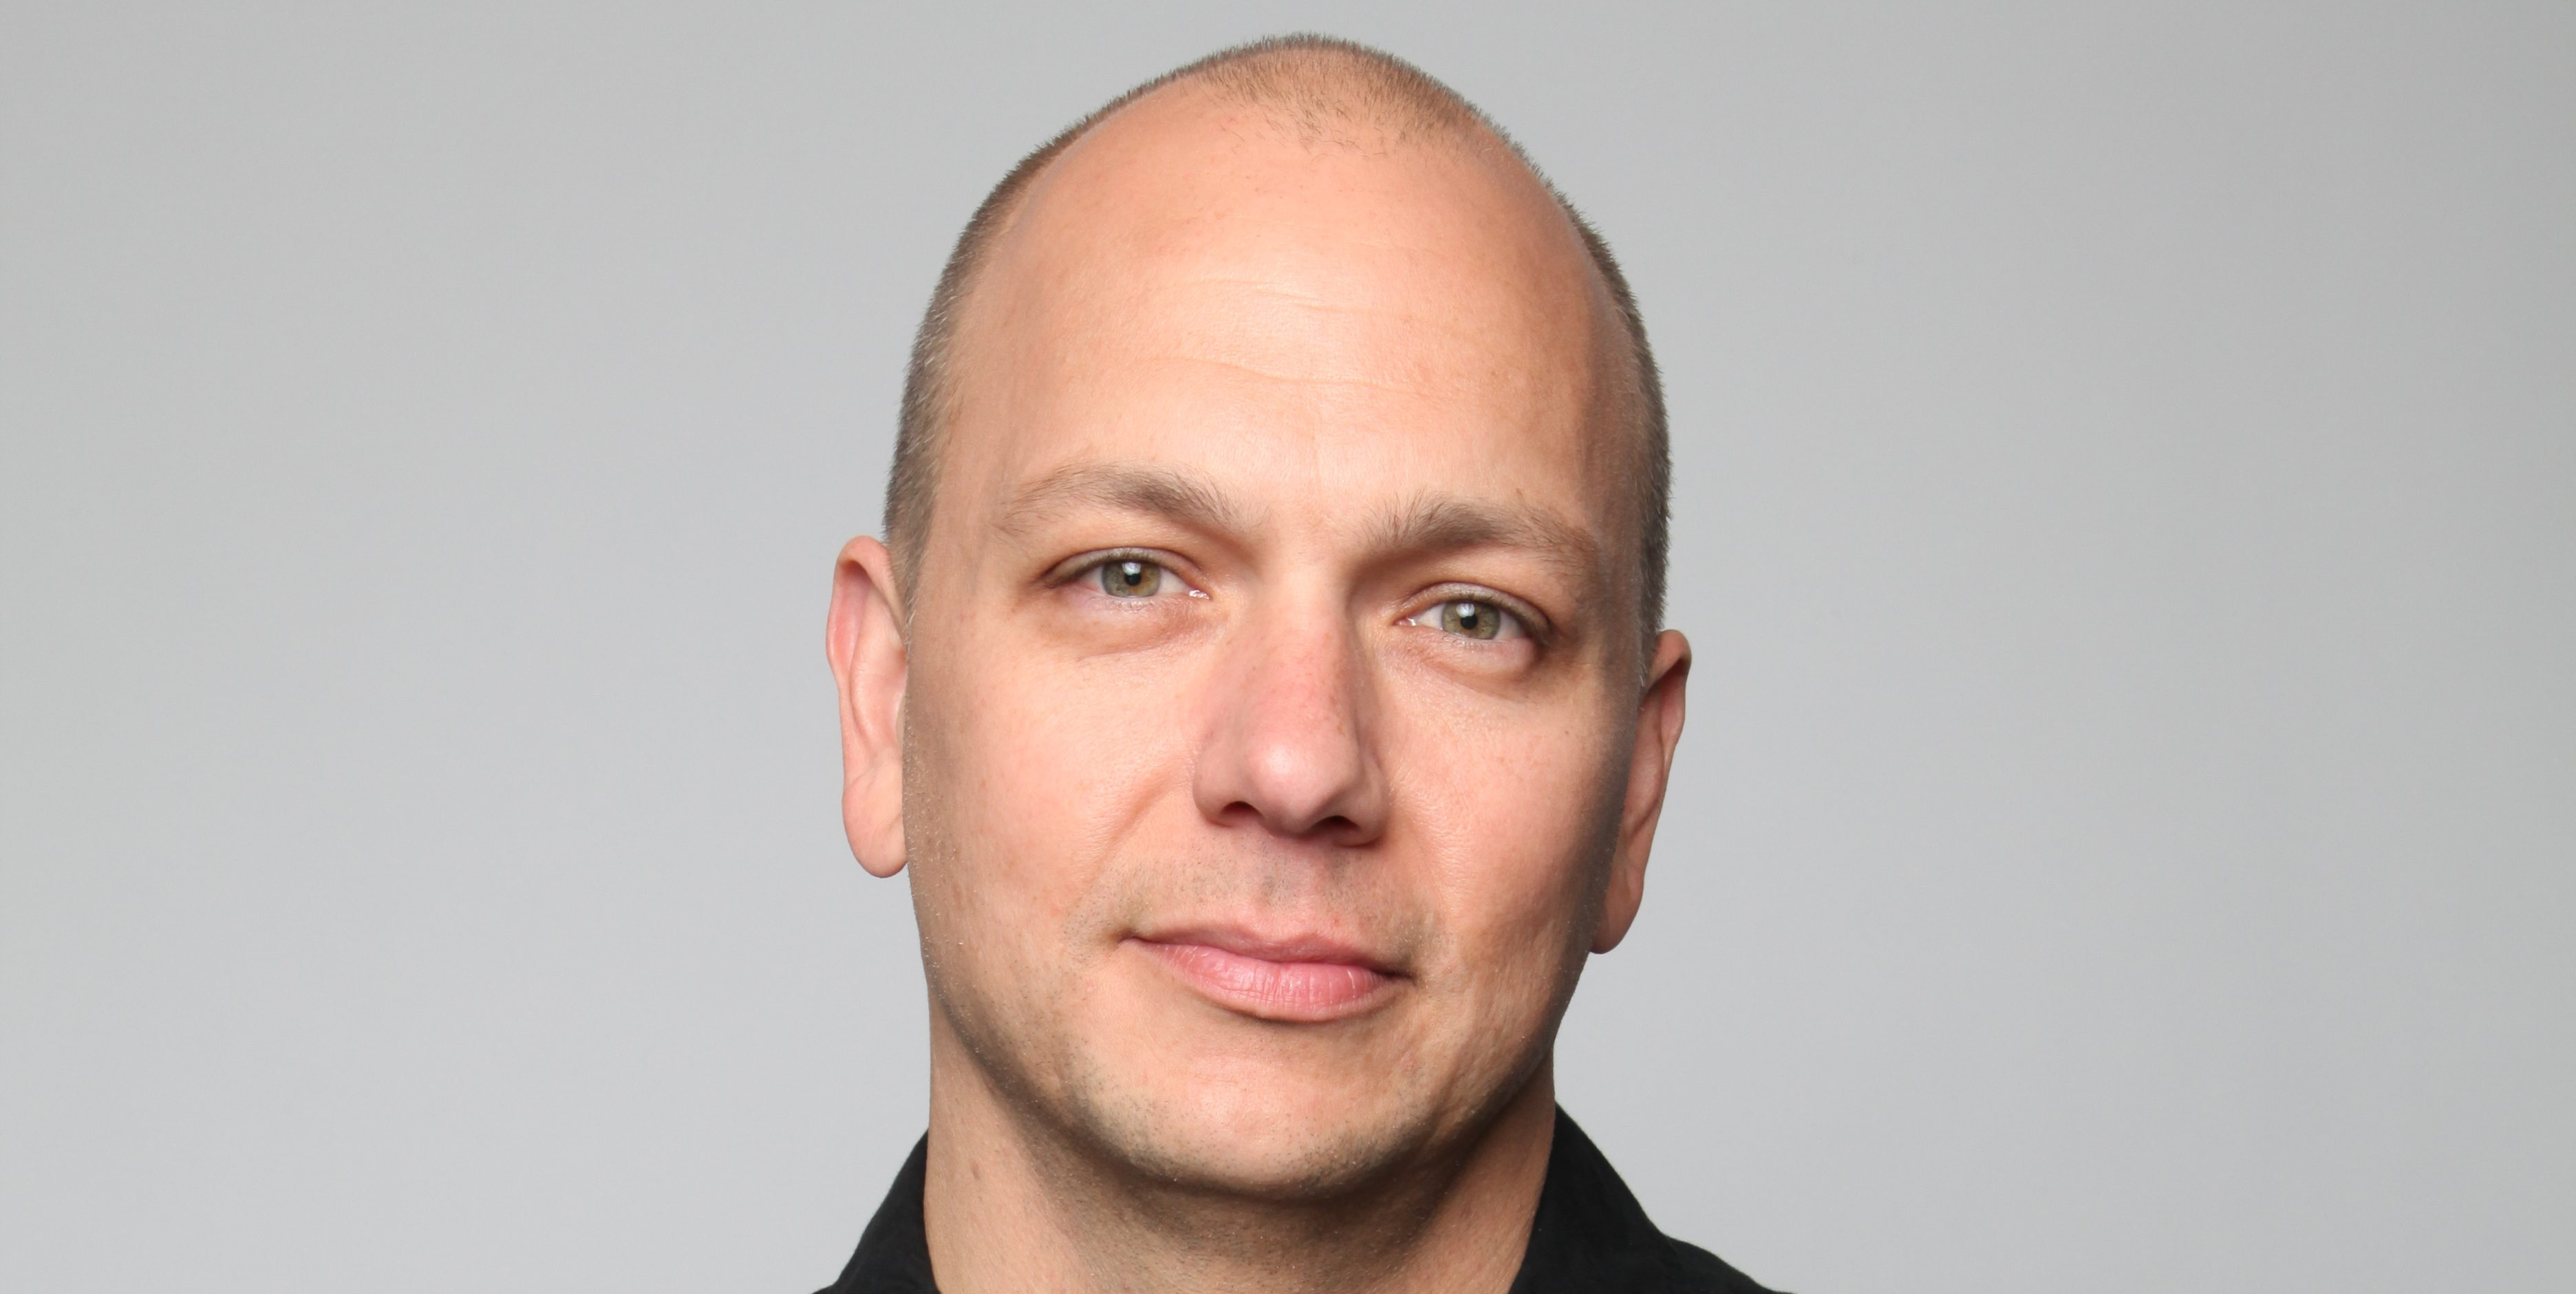 Samsung and Foxconn to back cable-free phone tech by Tony Fadell of iPod and Nest fame